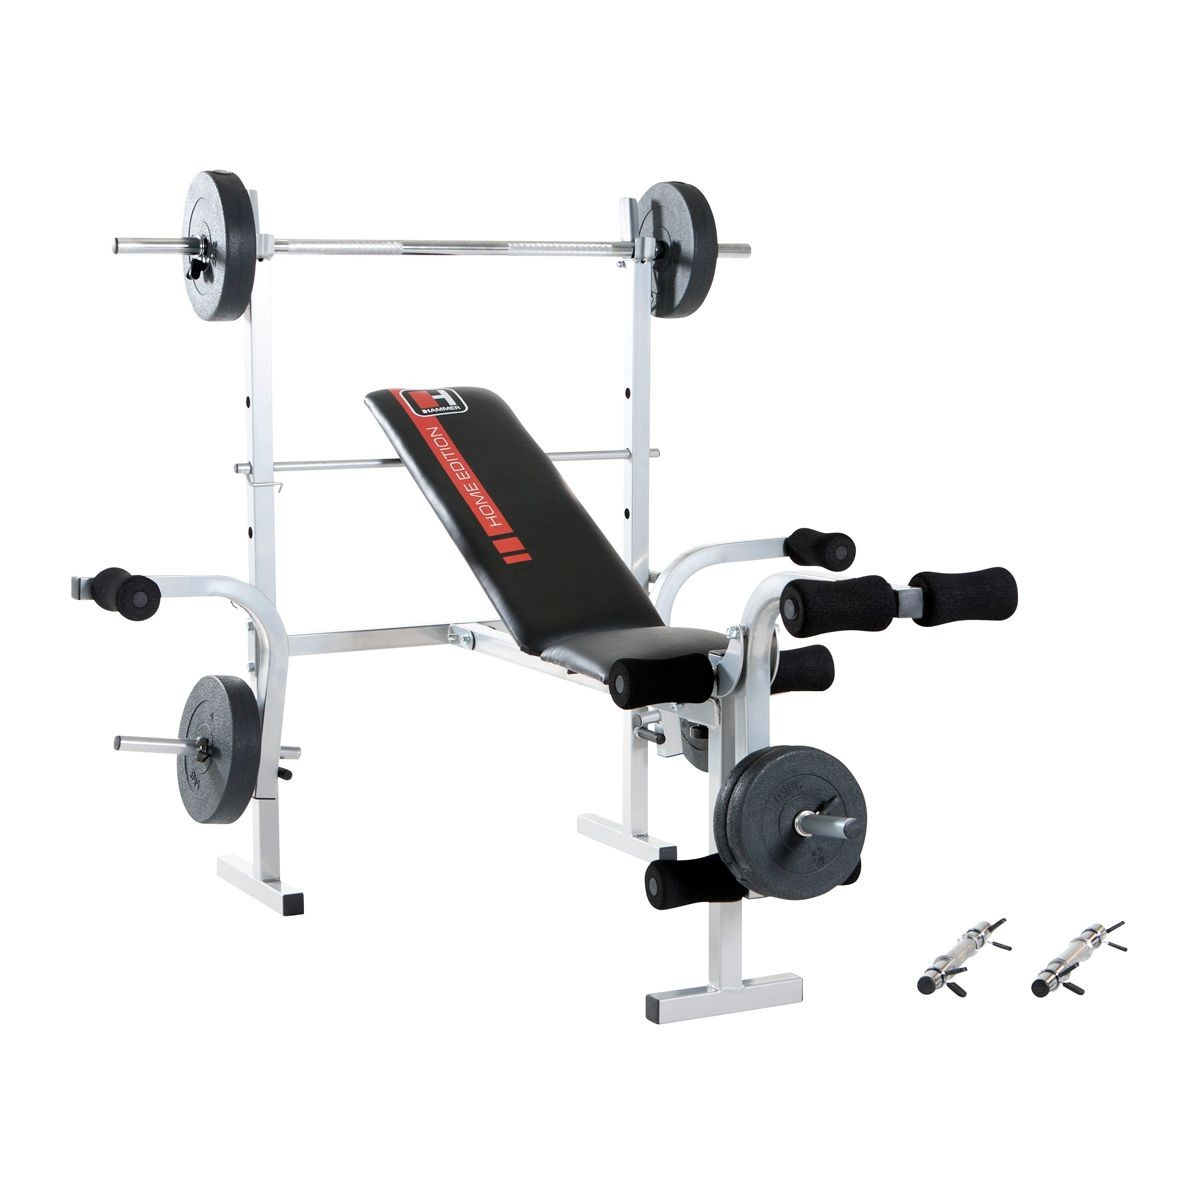 sporting weights gear bench olympic weight fitness goods with p is s benches dick